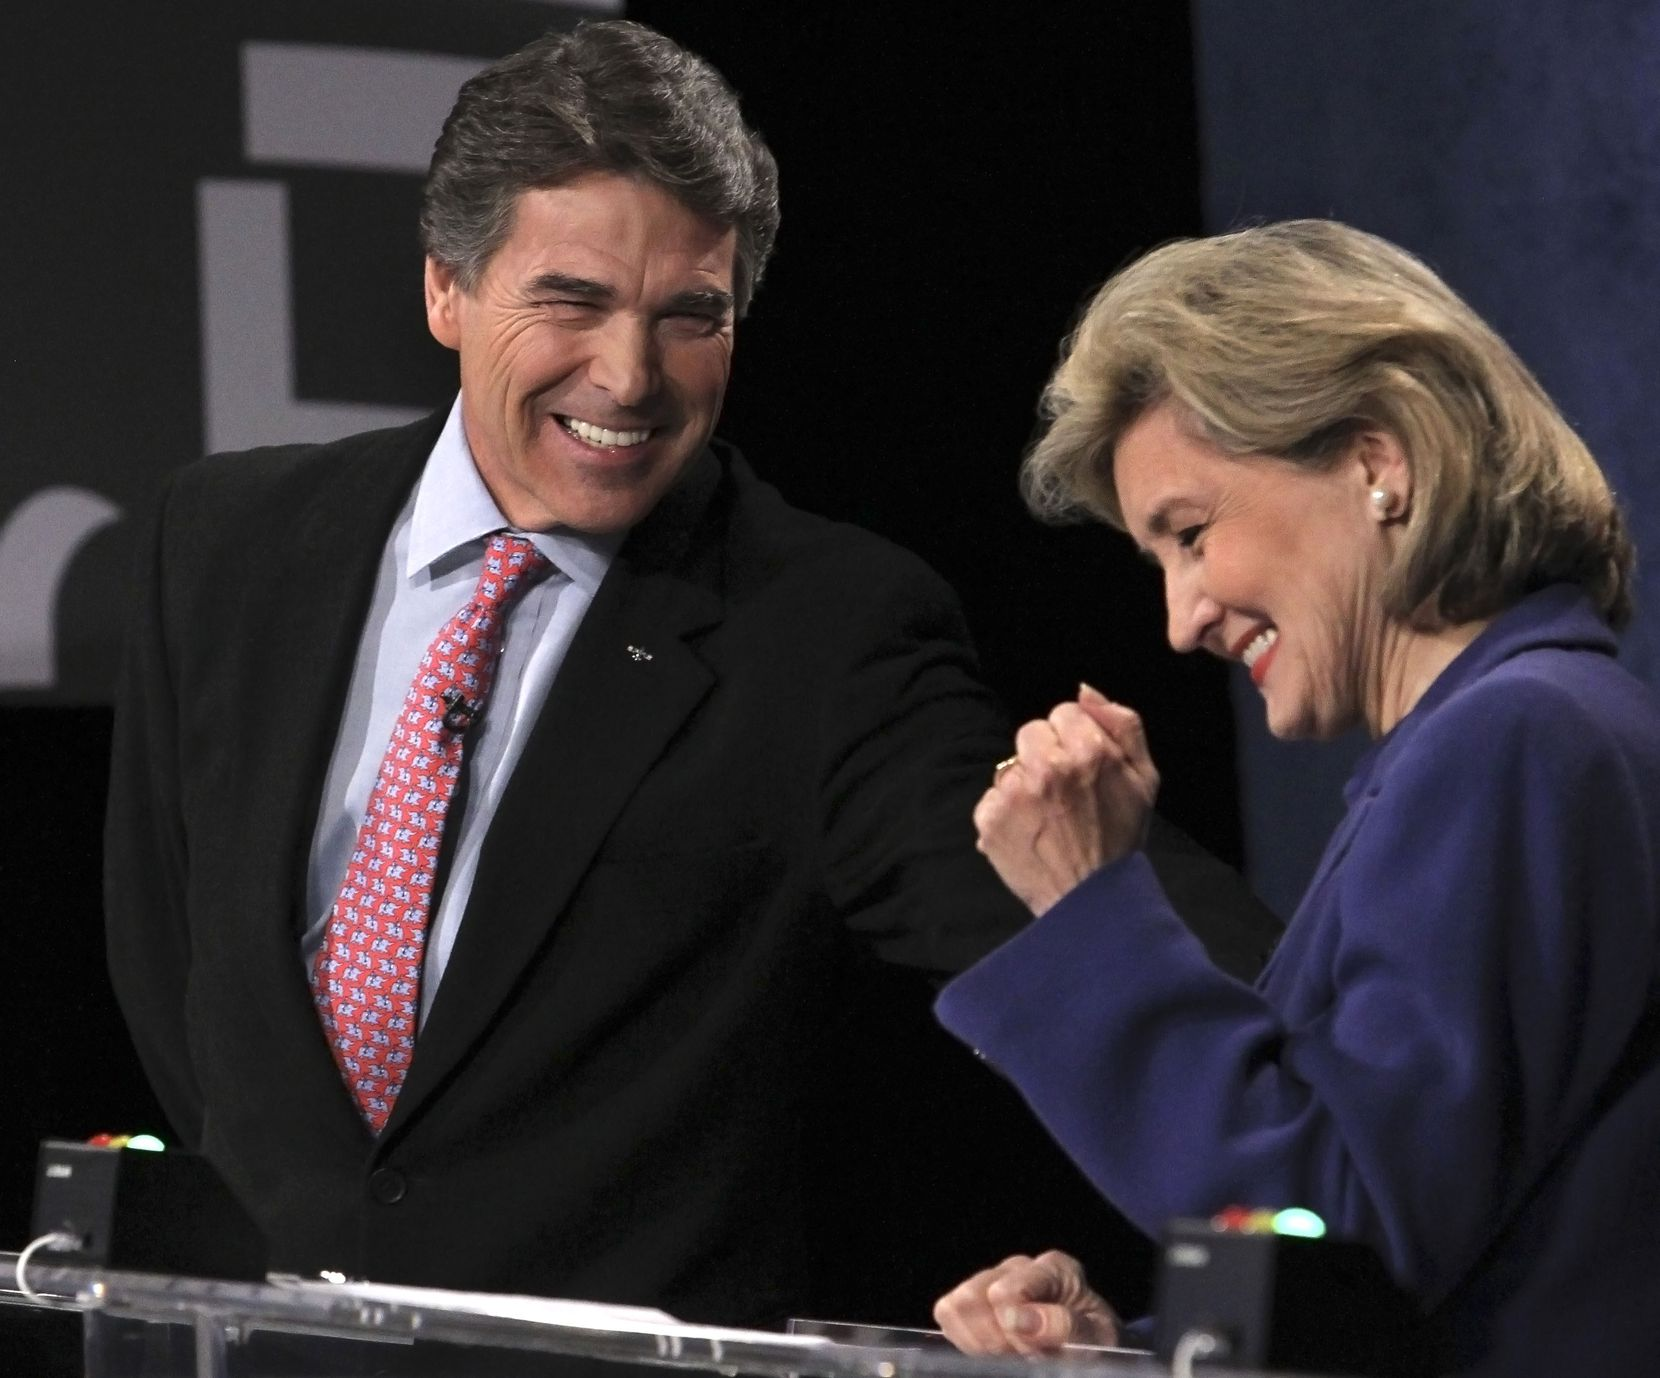 Texas Gov. Rick Perry and Sen. Kay Bailey Hutchison, R-Texas, shared a light moment during their 2010 GOP gubernatorial debate in Dallas.